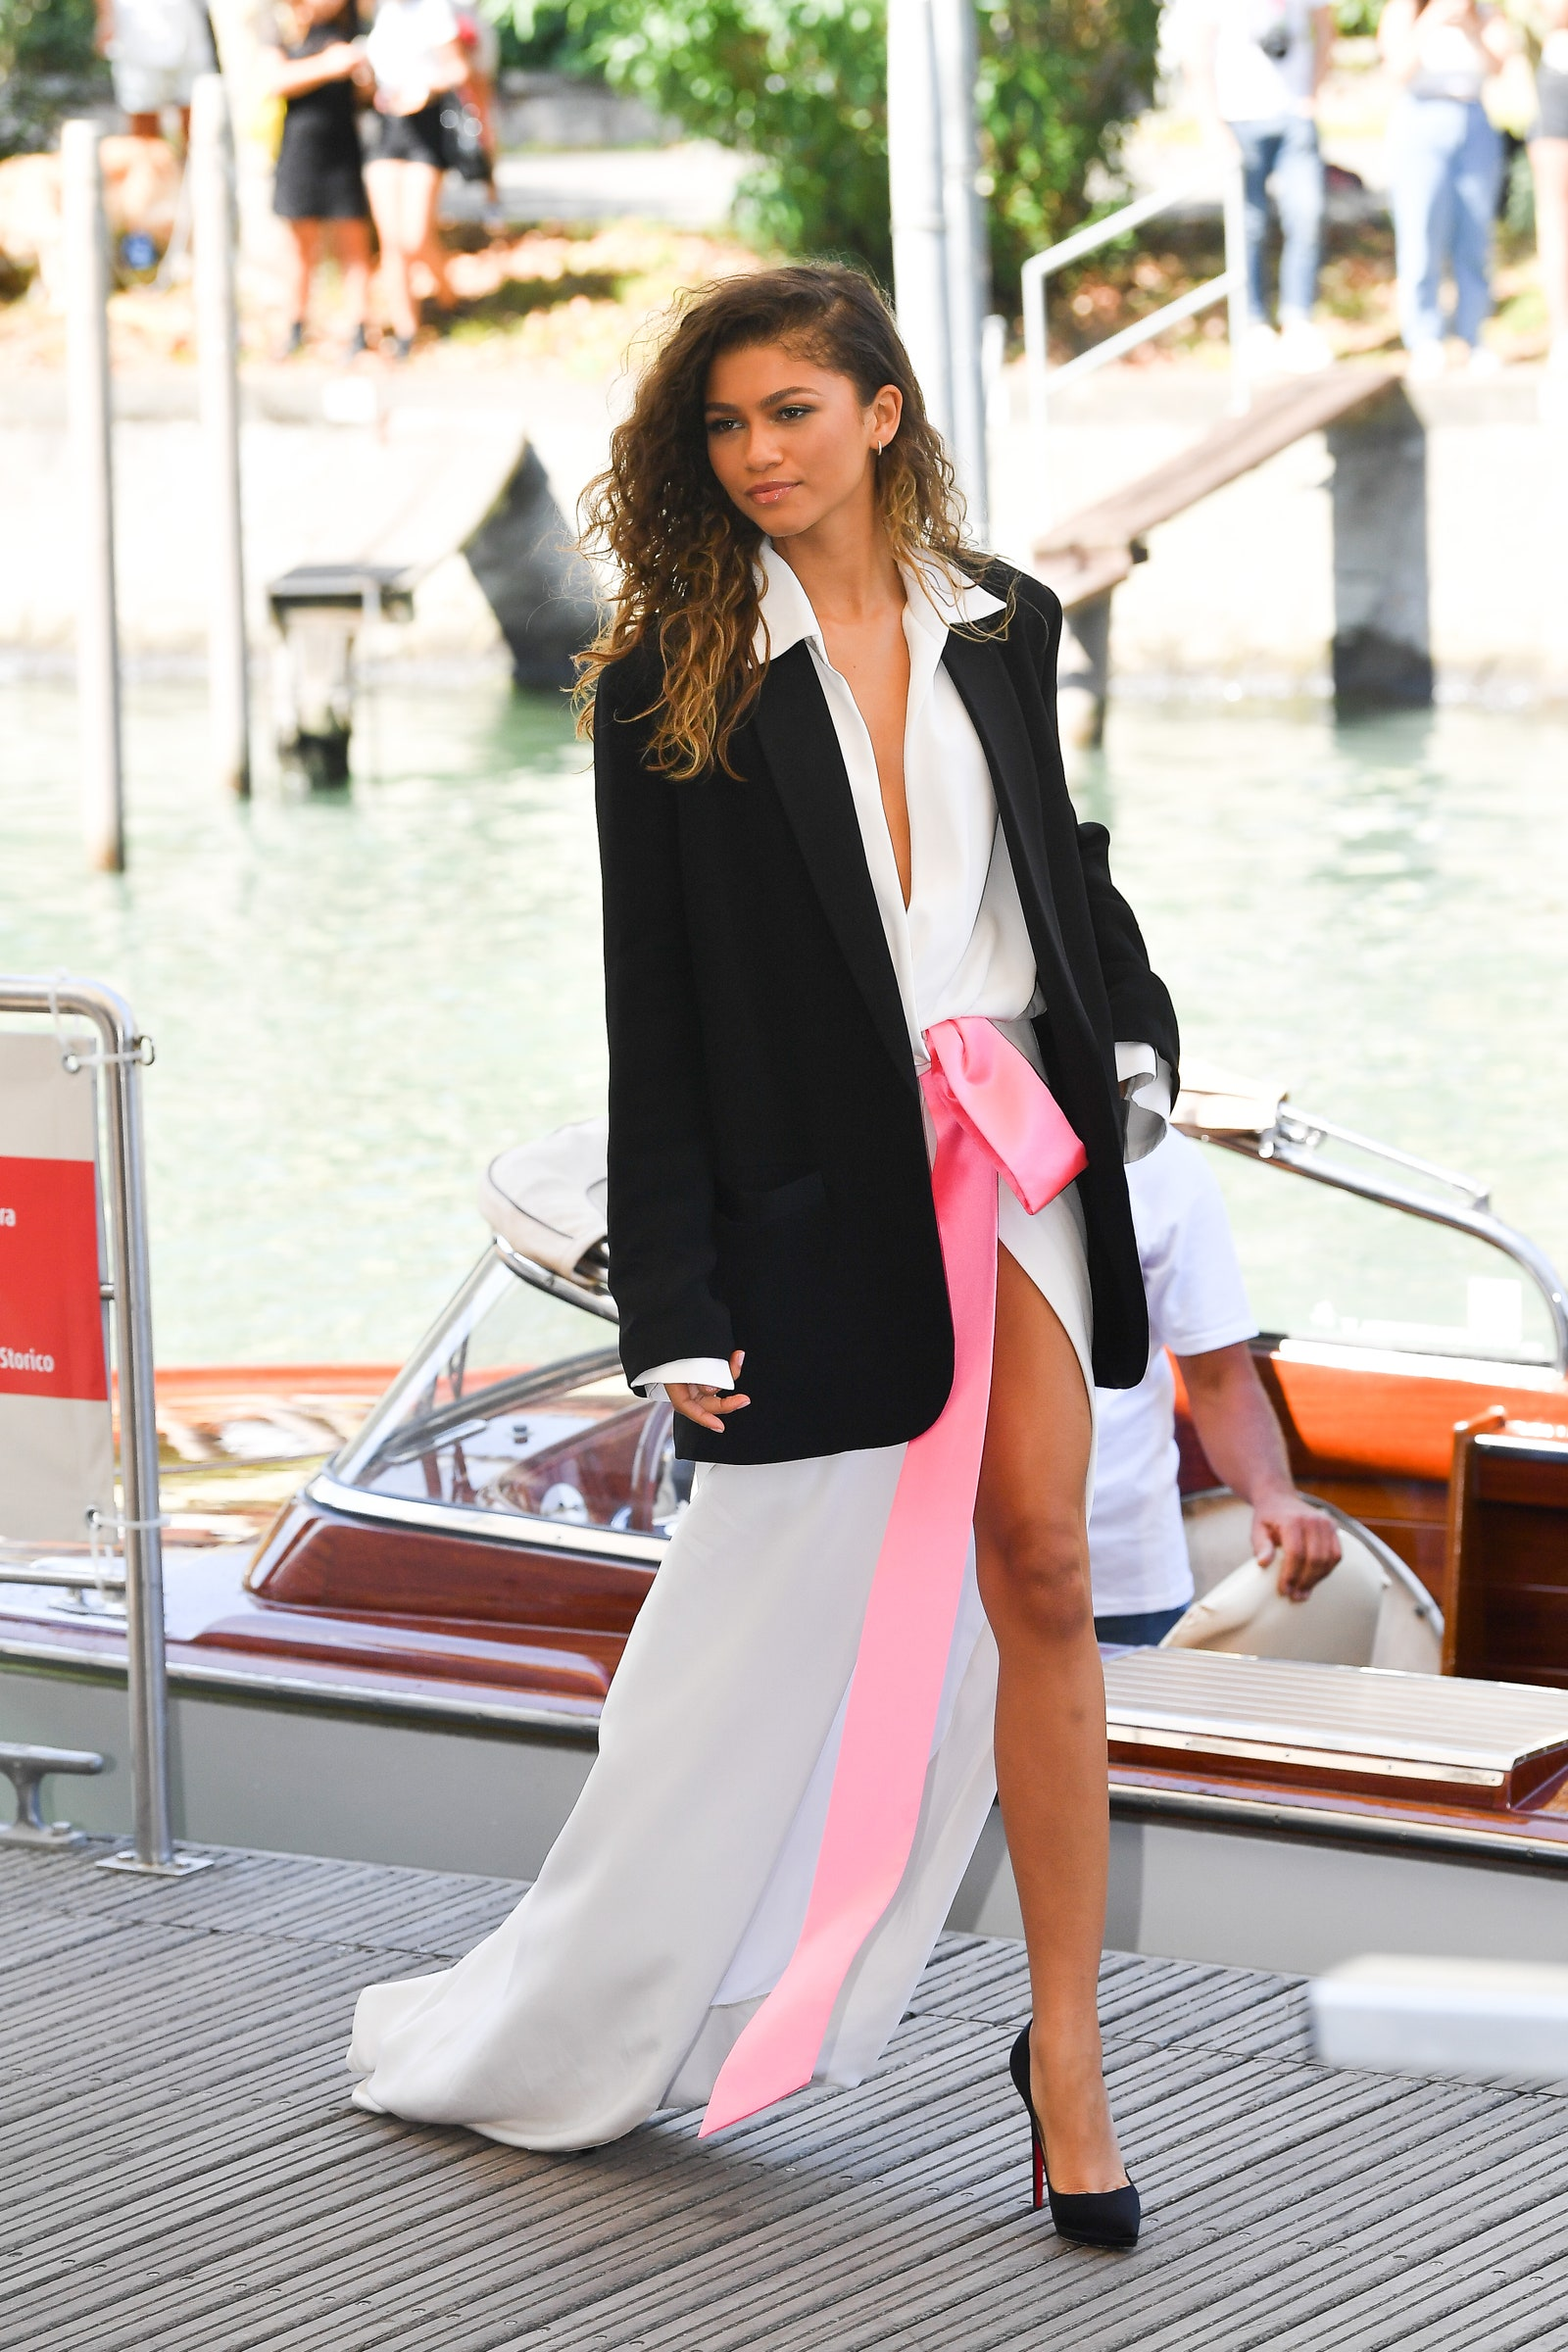 Zendaya's First appearance at the 2021 Venice Film Festival in Valentino couture.